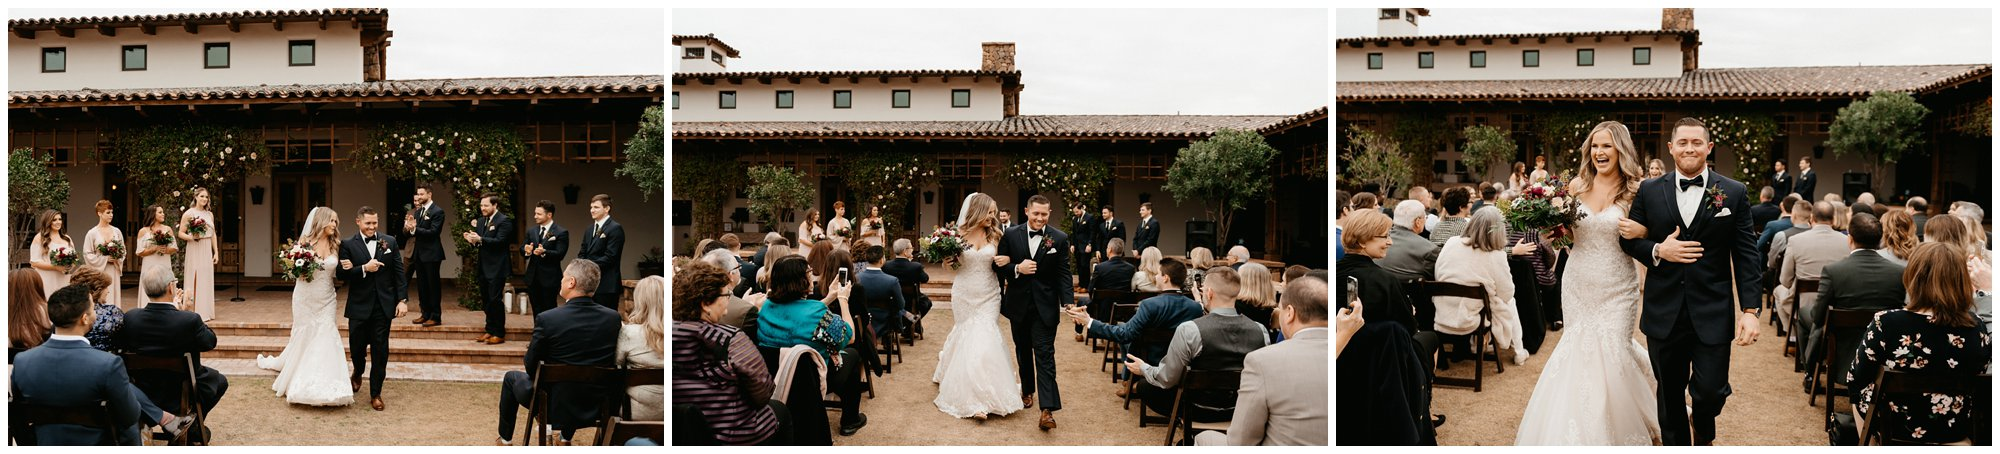 Arizona Wedding Photographer - Roberts Wedding_0029.jpg